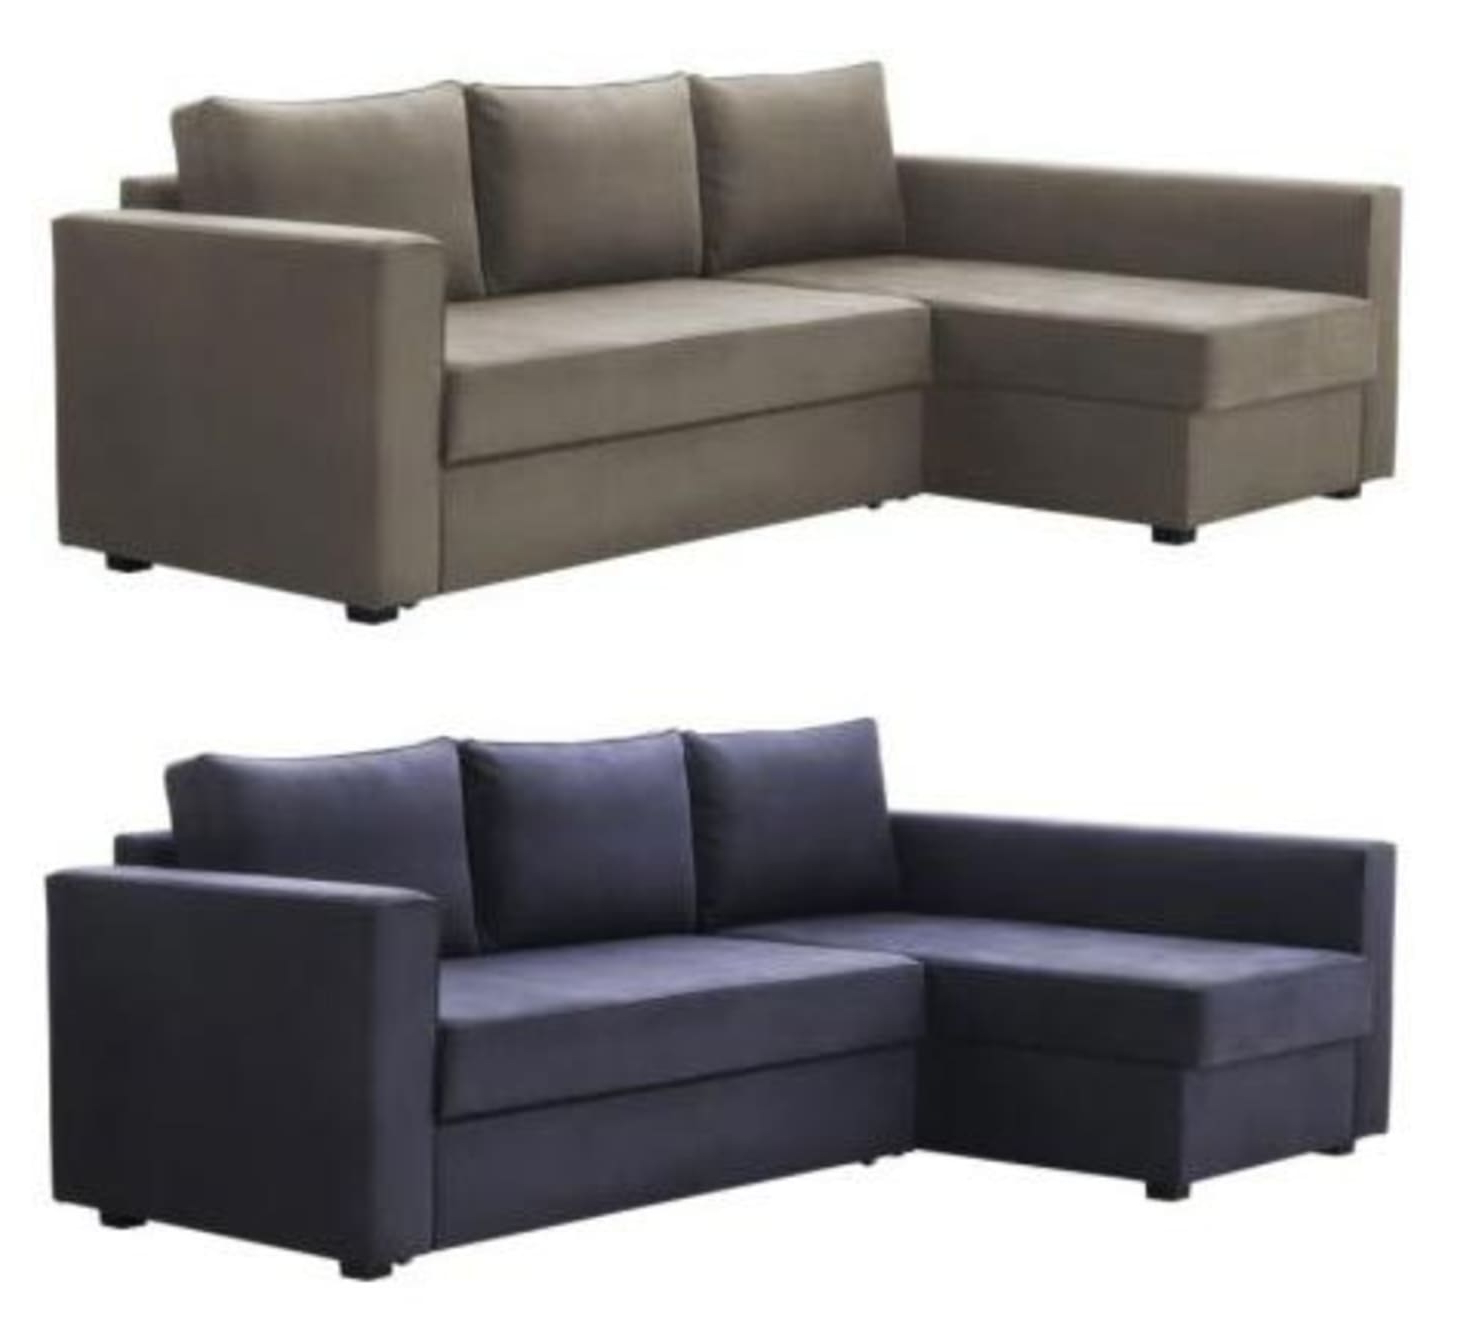 Apartment Within Celine Sectional Futon Sofas With Storage Reclining Couch (View 10 of 25)